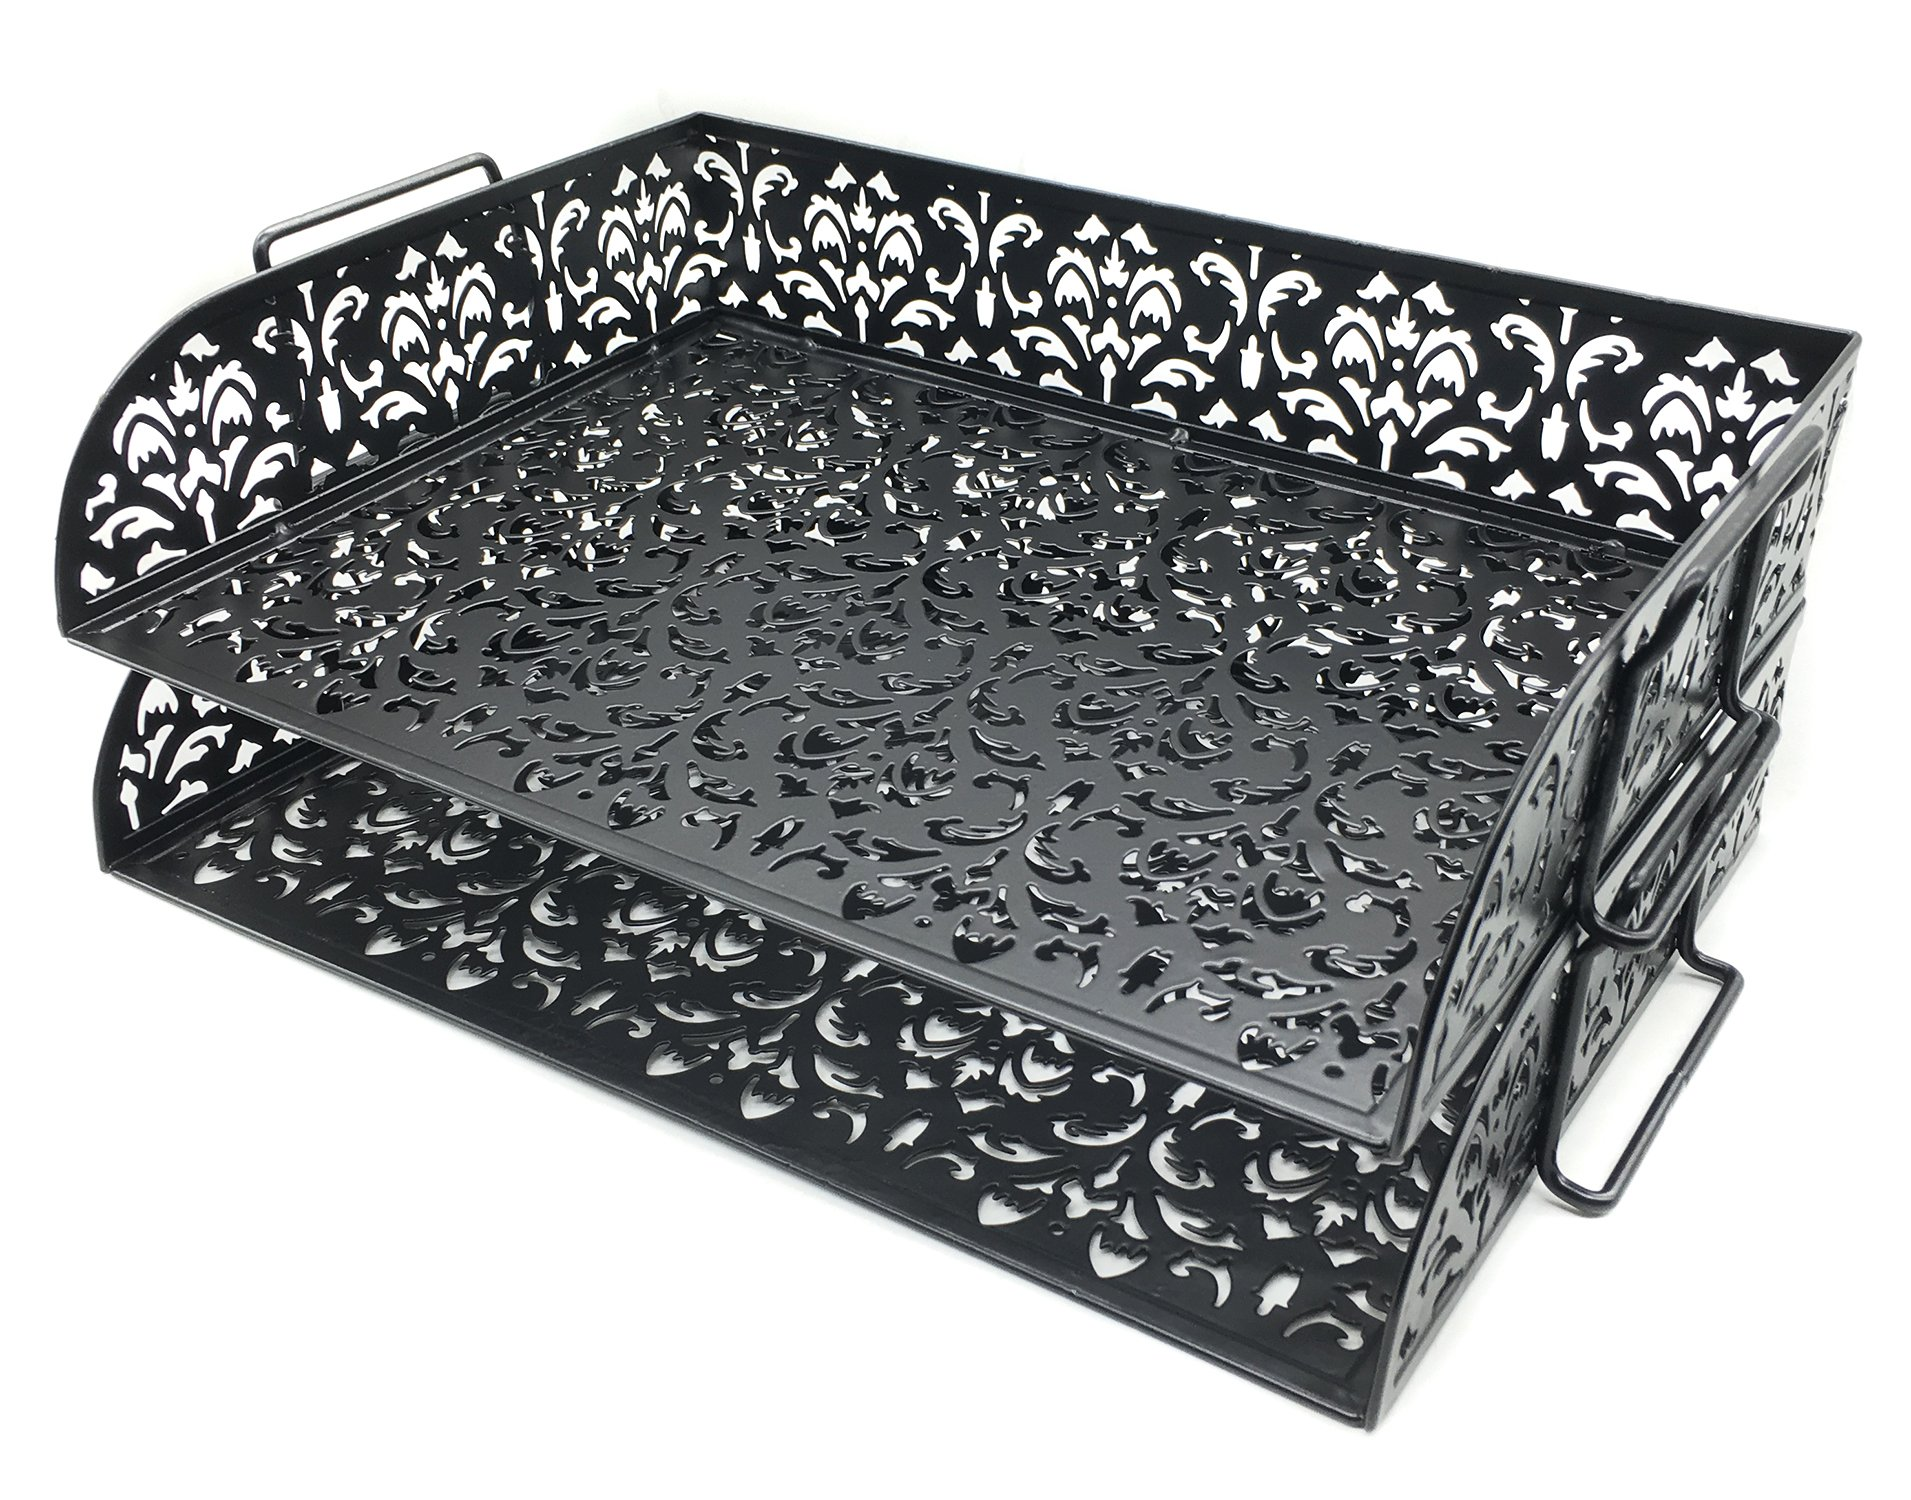 EasyPAG Carved Hollow Flower Pattern 2 Tier Desk Letter Tray,Black